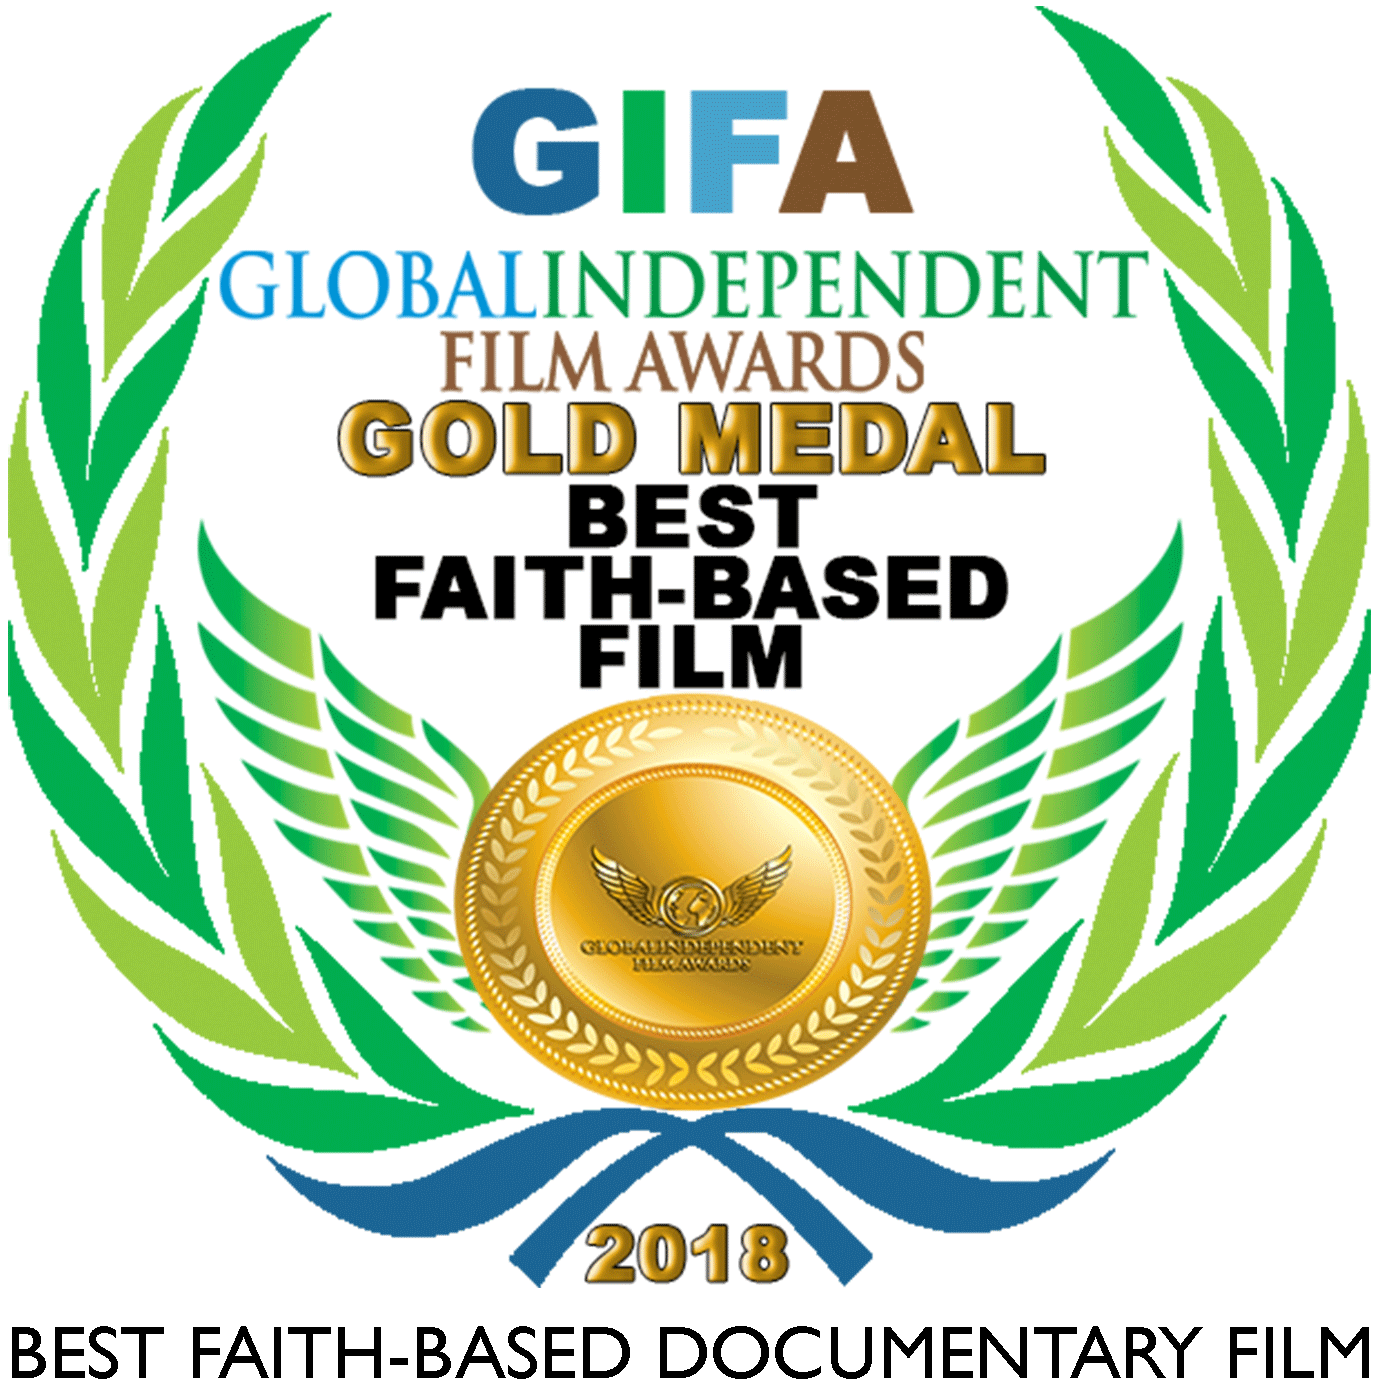 Sofia Wellman - Whats Love Got To Do With It - Film by Sofia Wellman - GIFA - Gold Medal - Best Faith Based Documentary Film - 2018